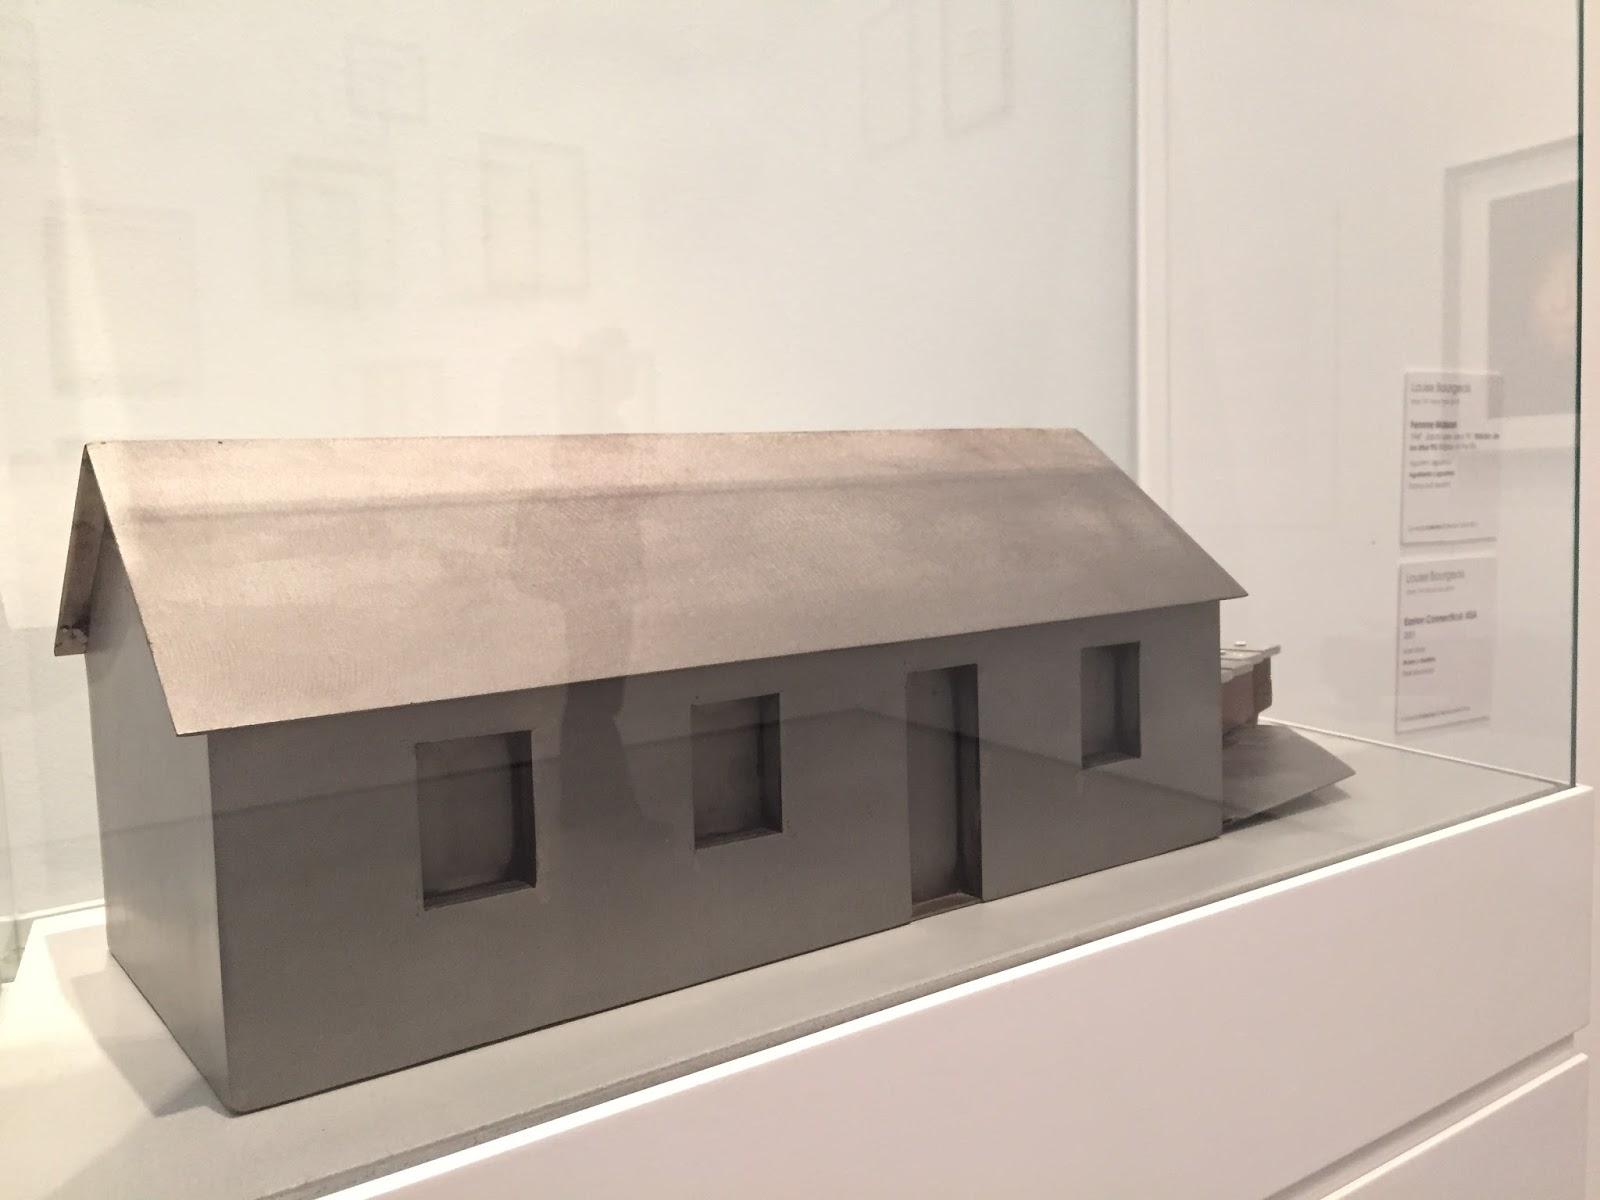 Tocho T8: LOUISE BOURGEOIS (1911-2000): MÚSICA Y ARQUITECTURA ...